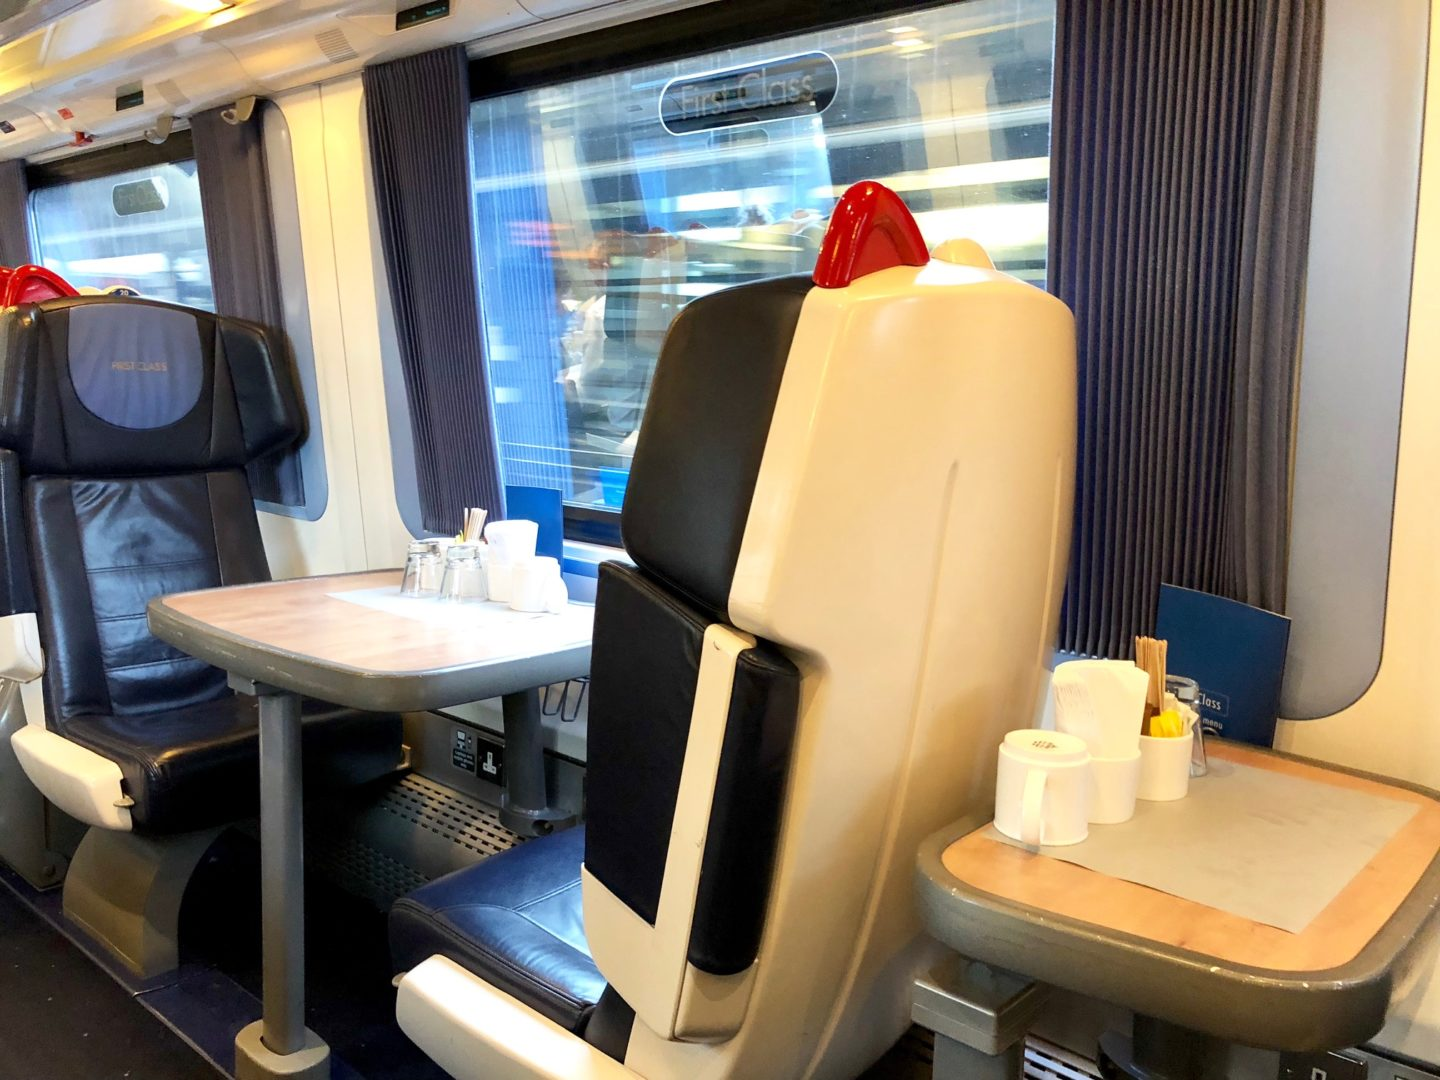 Get A Rate >> 5* Review East Midlands Trains First Class - Celebrity ...